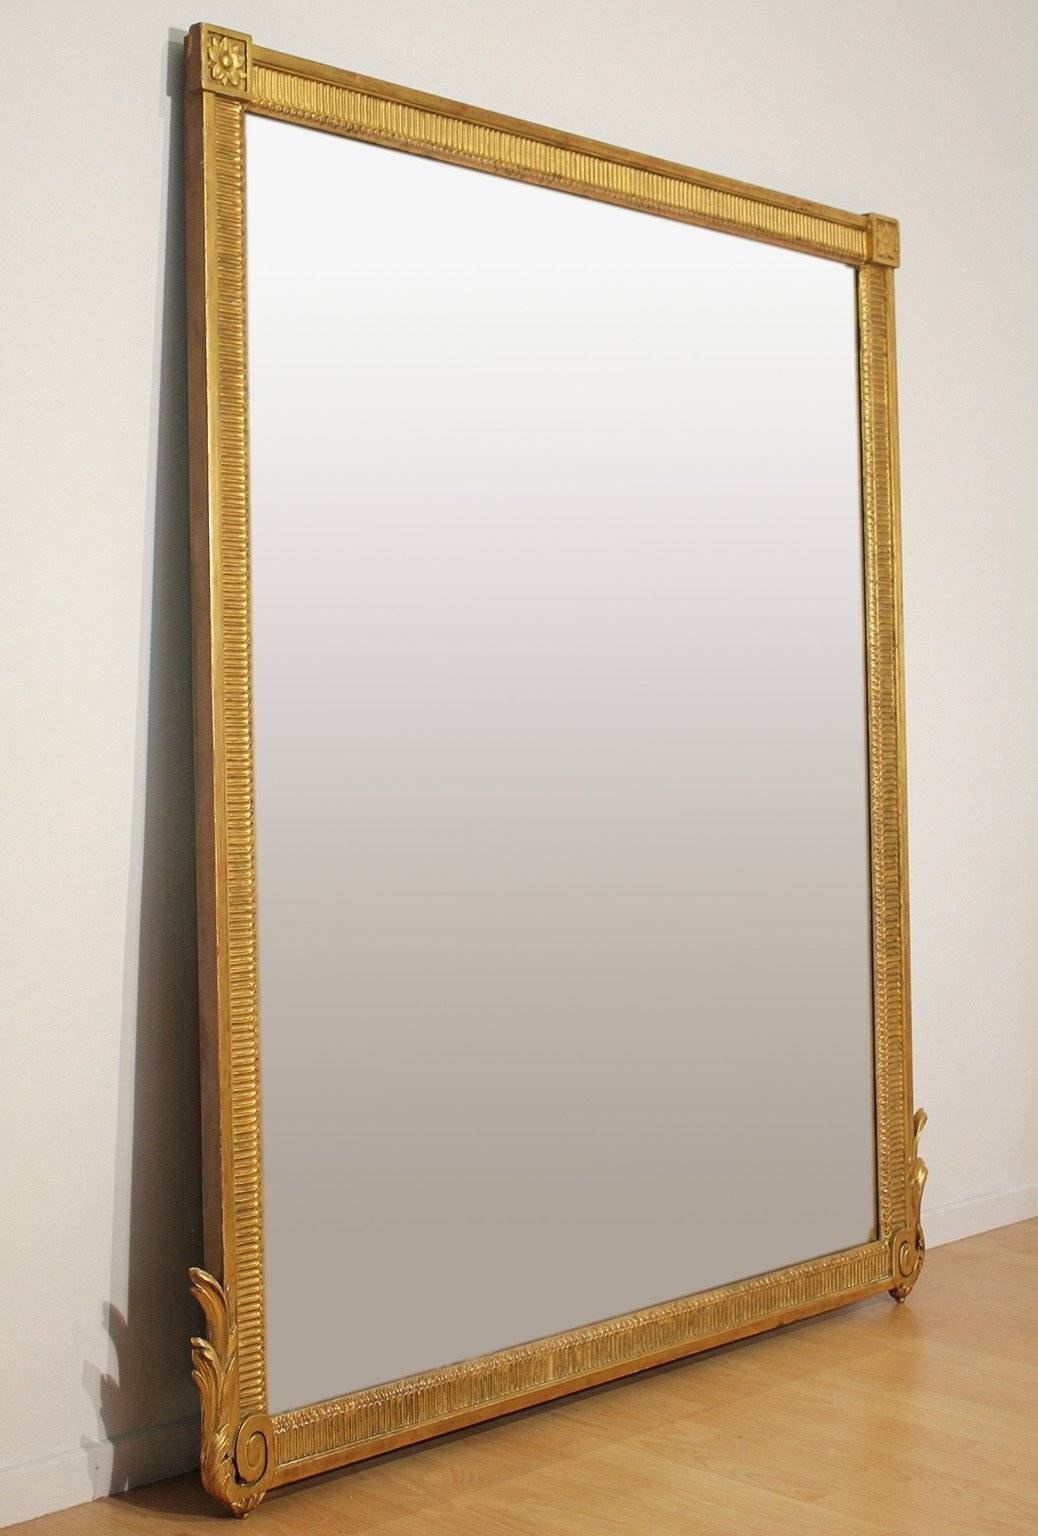 Large Antique French Neoclassical Decorative Gold Framed Mirror At with regard to Gilt Framed Mirrors (Image 12 of 25)